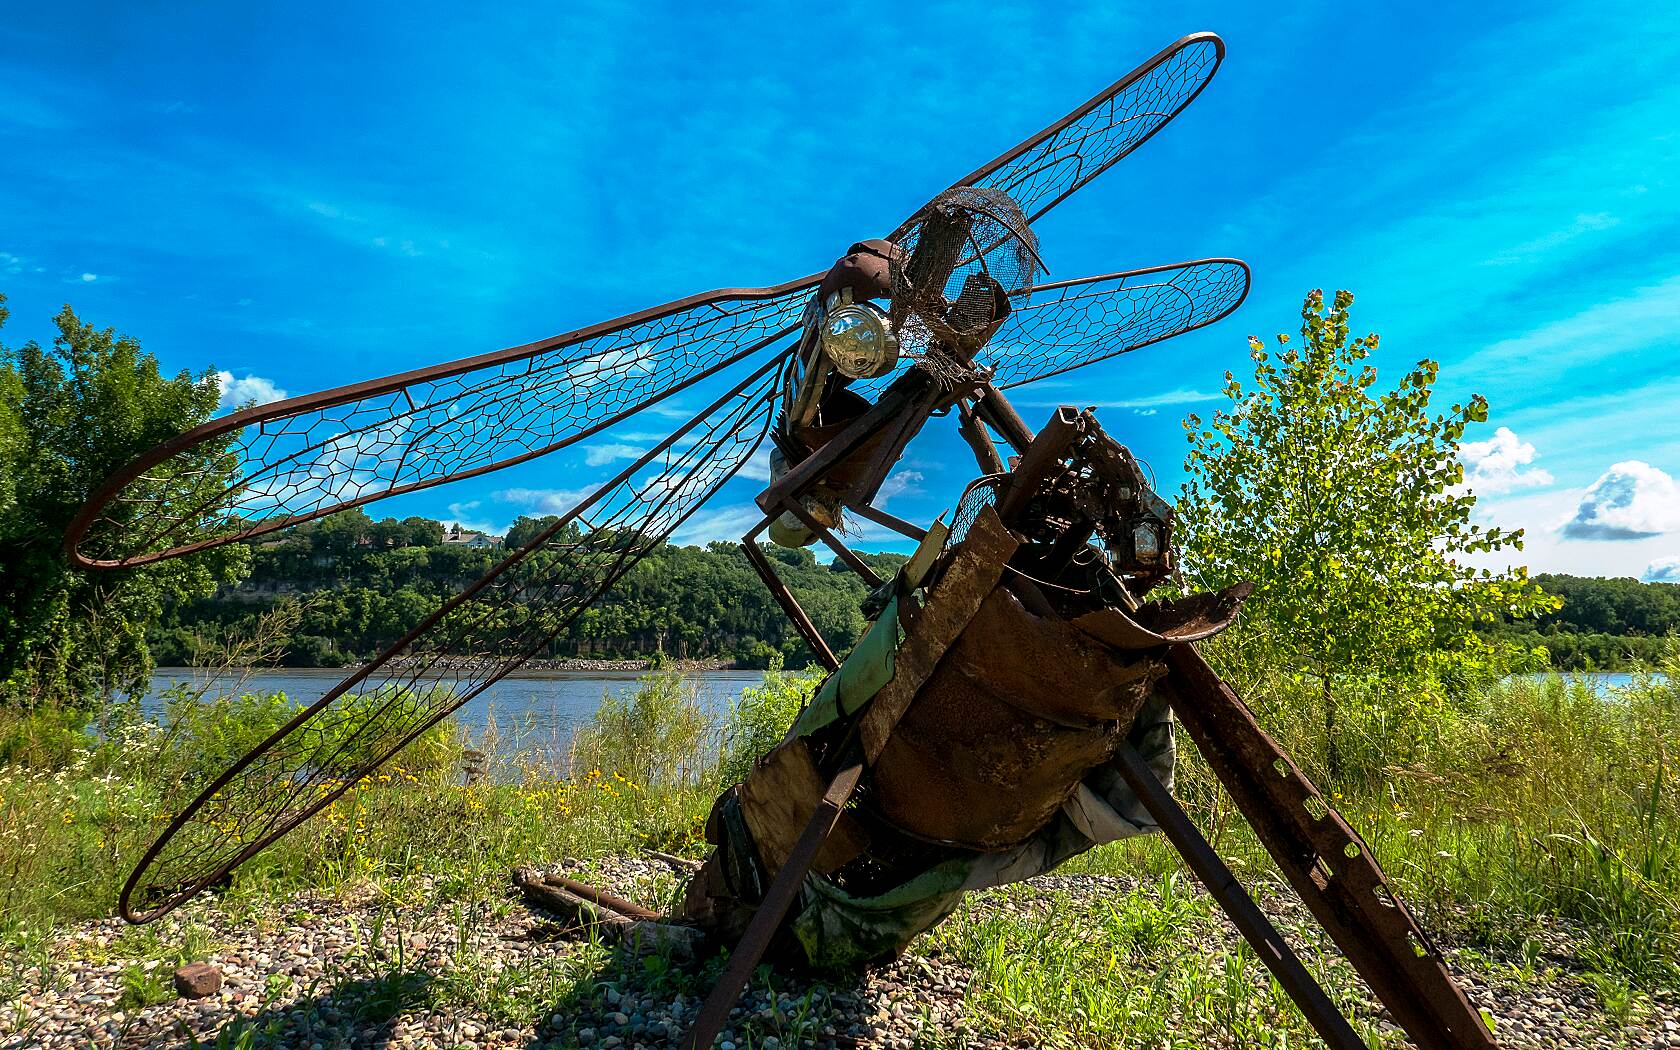 Mississippi River Regional Trail (Dakota County) Dragonfly Sculpture This critter awaits you at the river-side of the trail as you head north out of Hastings on the way to Spring Lake. Rumor has it the real ones get this big and even bigger near the Prairie Island Nuclear Plant. Beware!